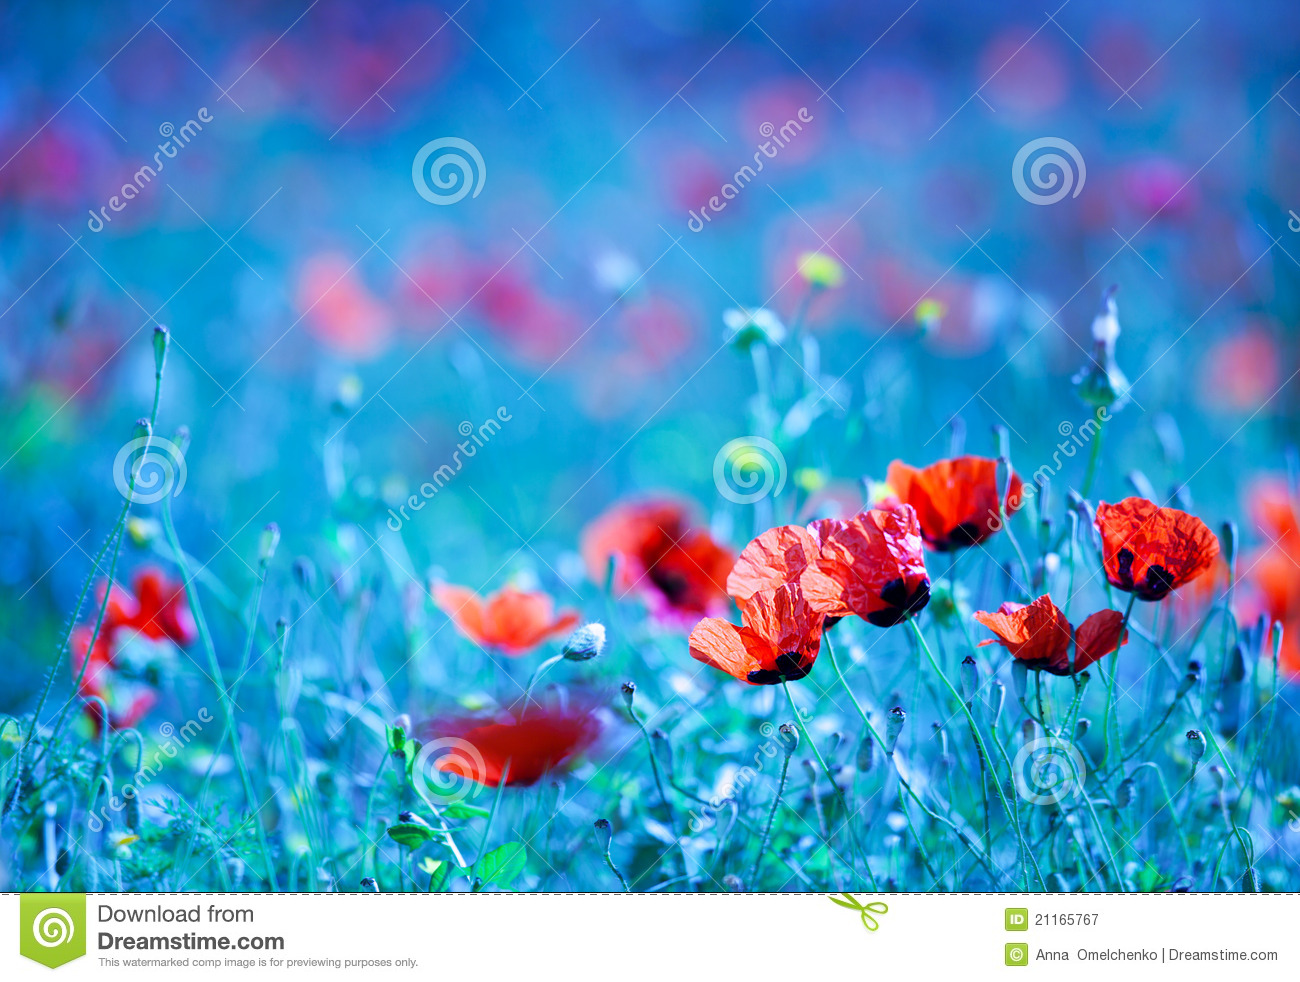 Royalty free stock photo background blue dreamy field flower focus natural nature night poppy